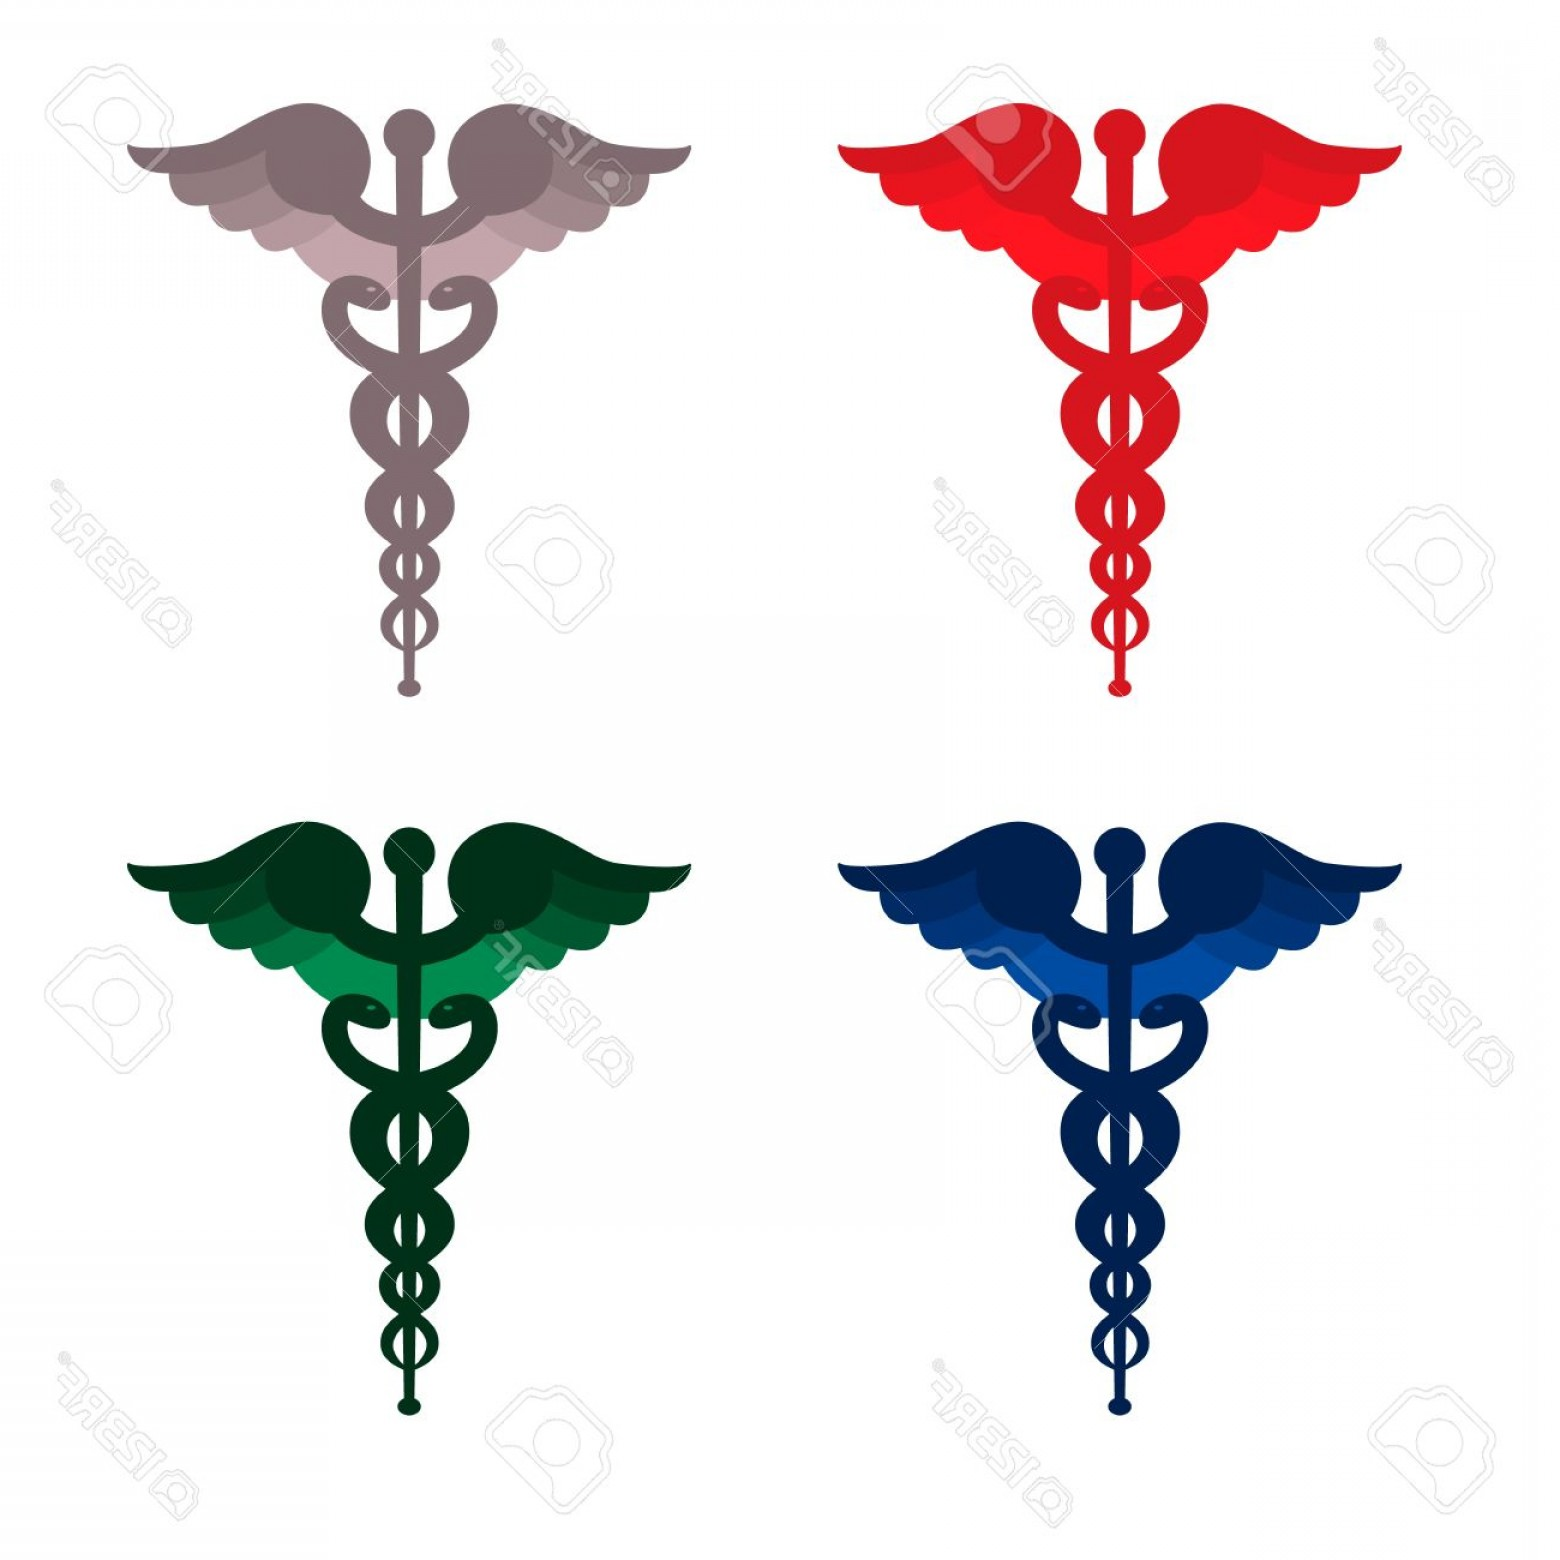 With Red Caduceus Vector: Photocolor Caduceus Symbols Red Blue Grey And Green